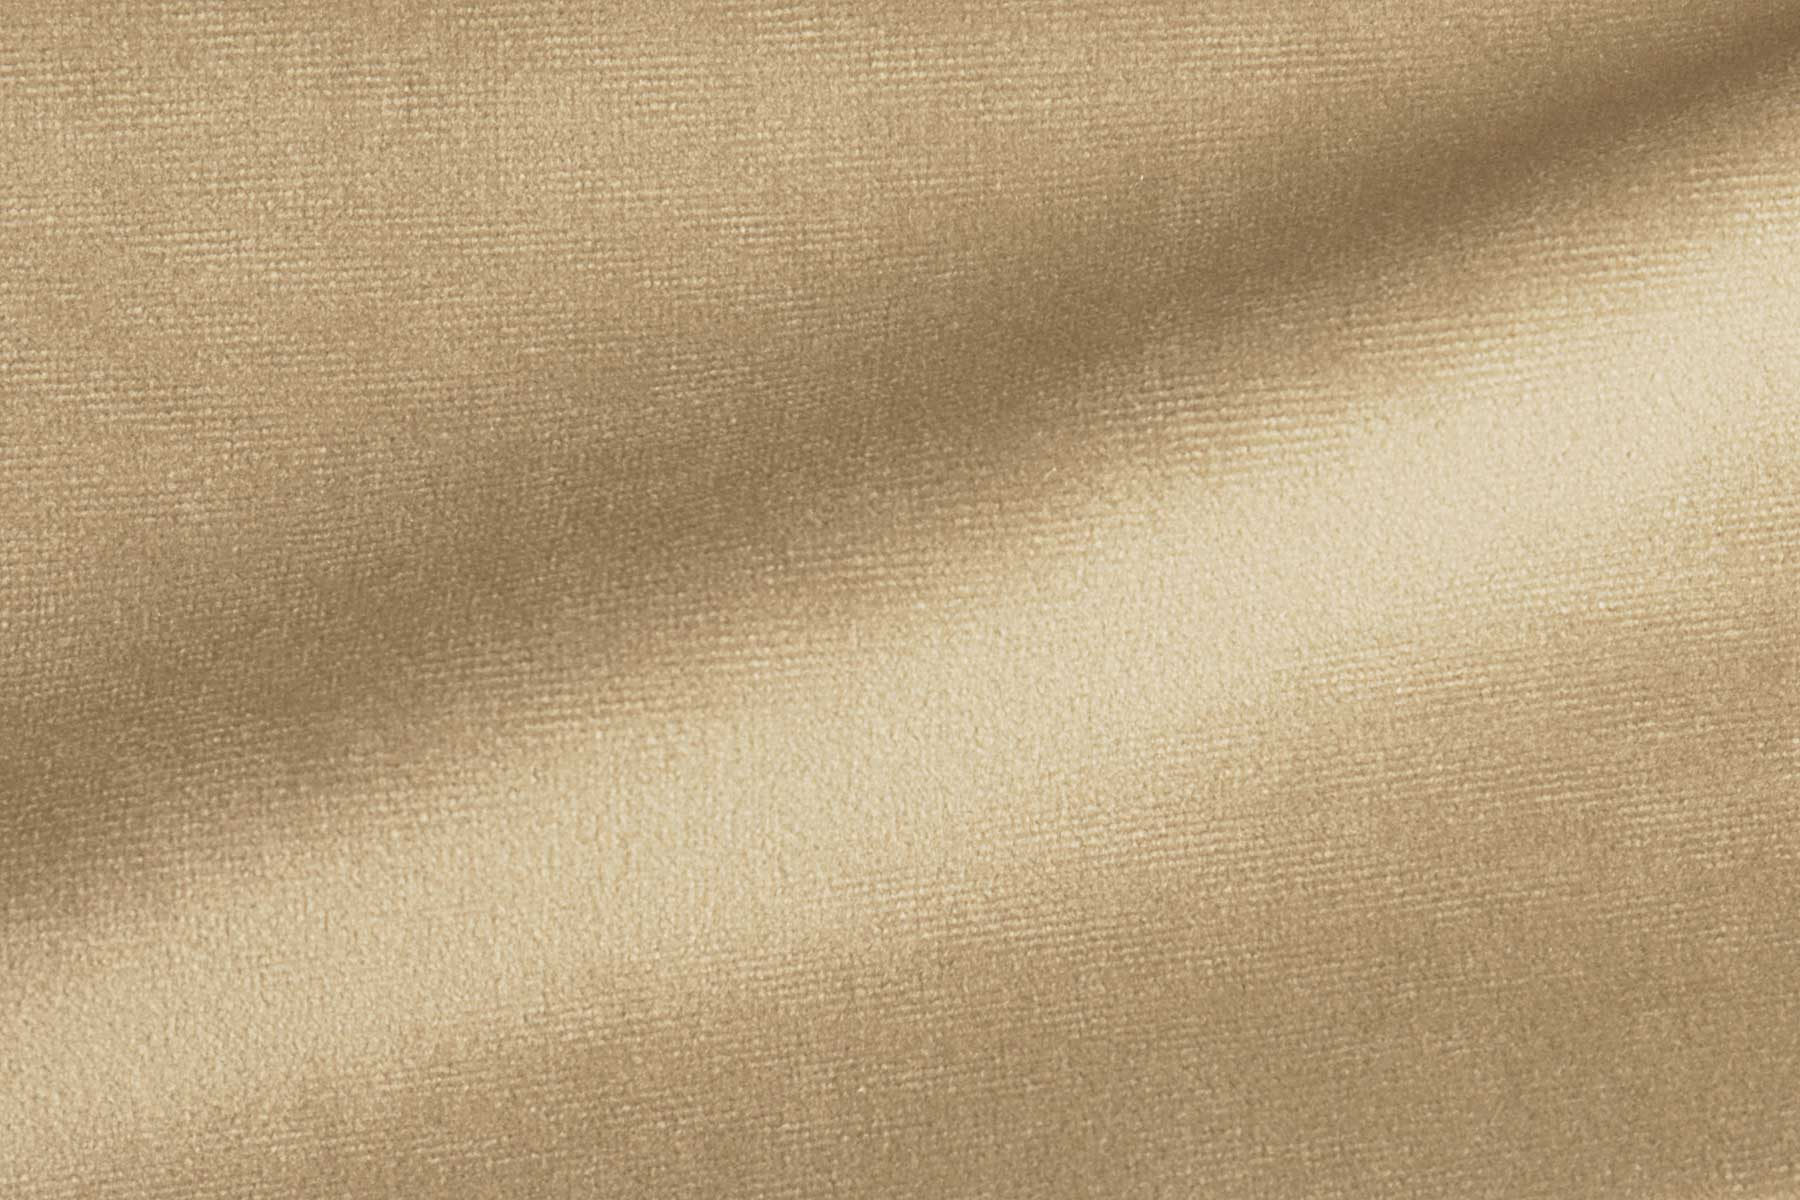 PARIS VELVET CHAMPAGNE Fabric by KOKET